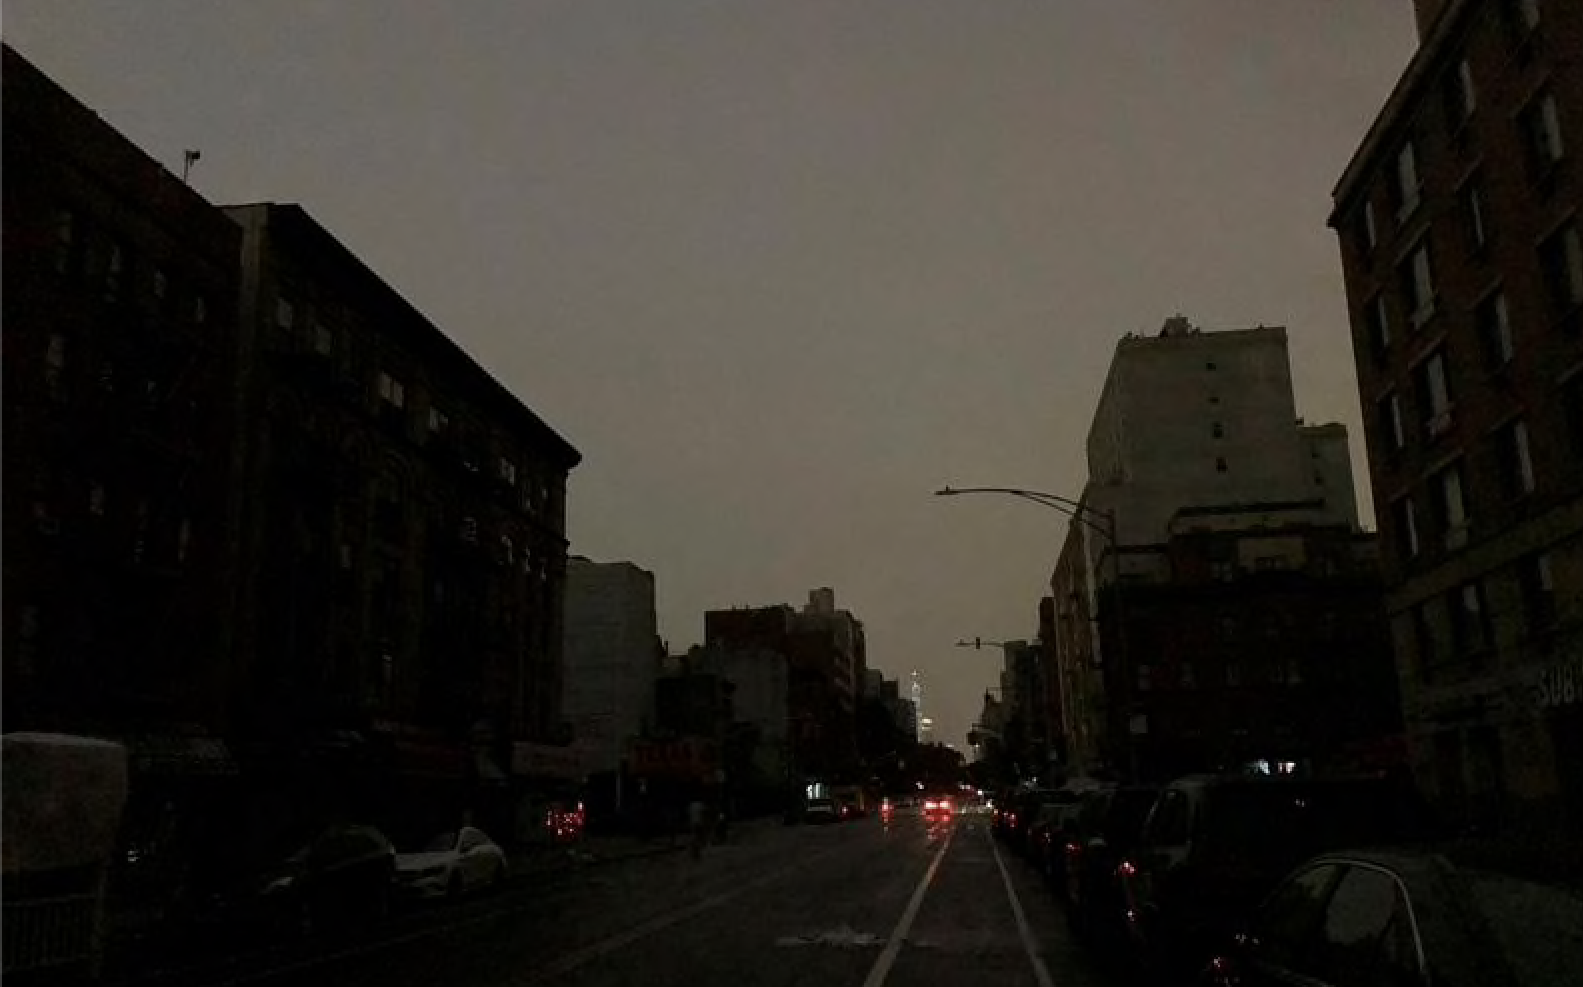 Blackout hits large portions of Upper Manhattan, Queens, leaving over 180,000 people temporarily without power